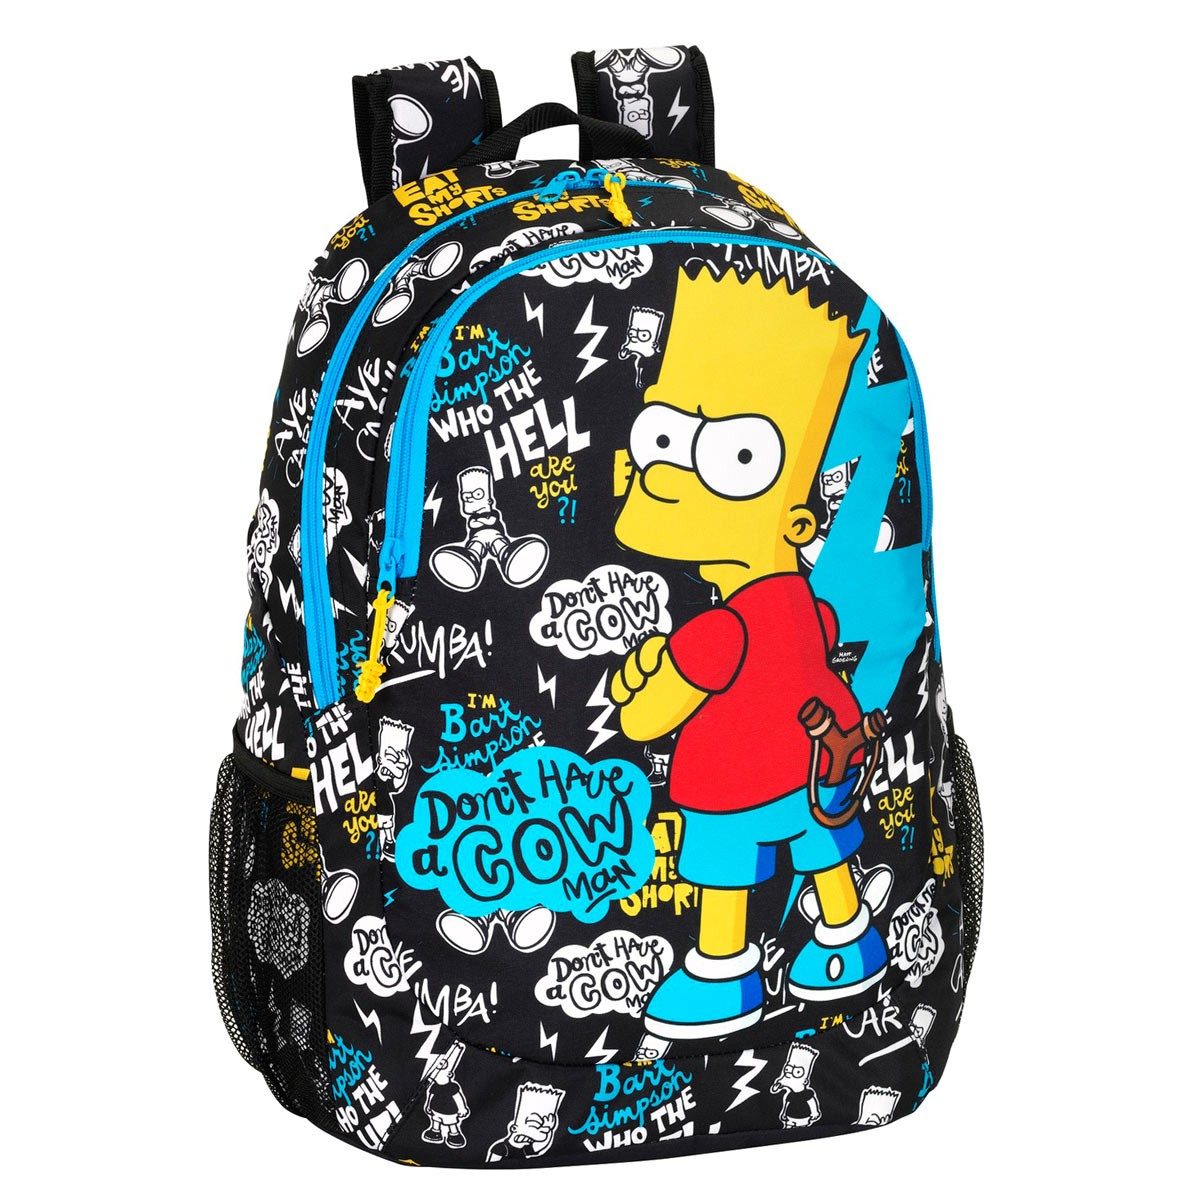 Premium Bart Simpson Backpack Day Pack Large 8bdbfbd7620e1